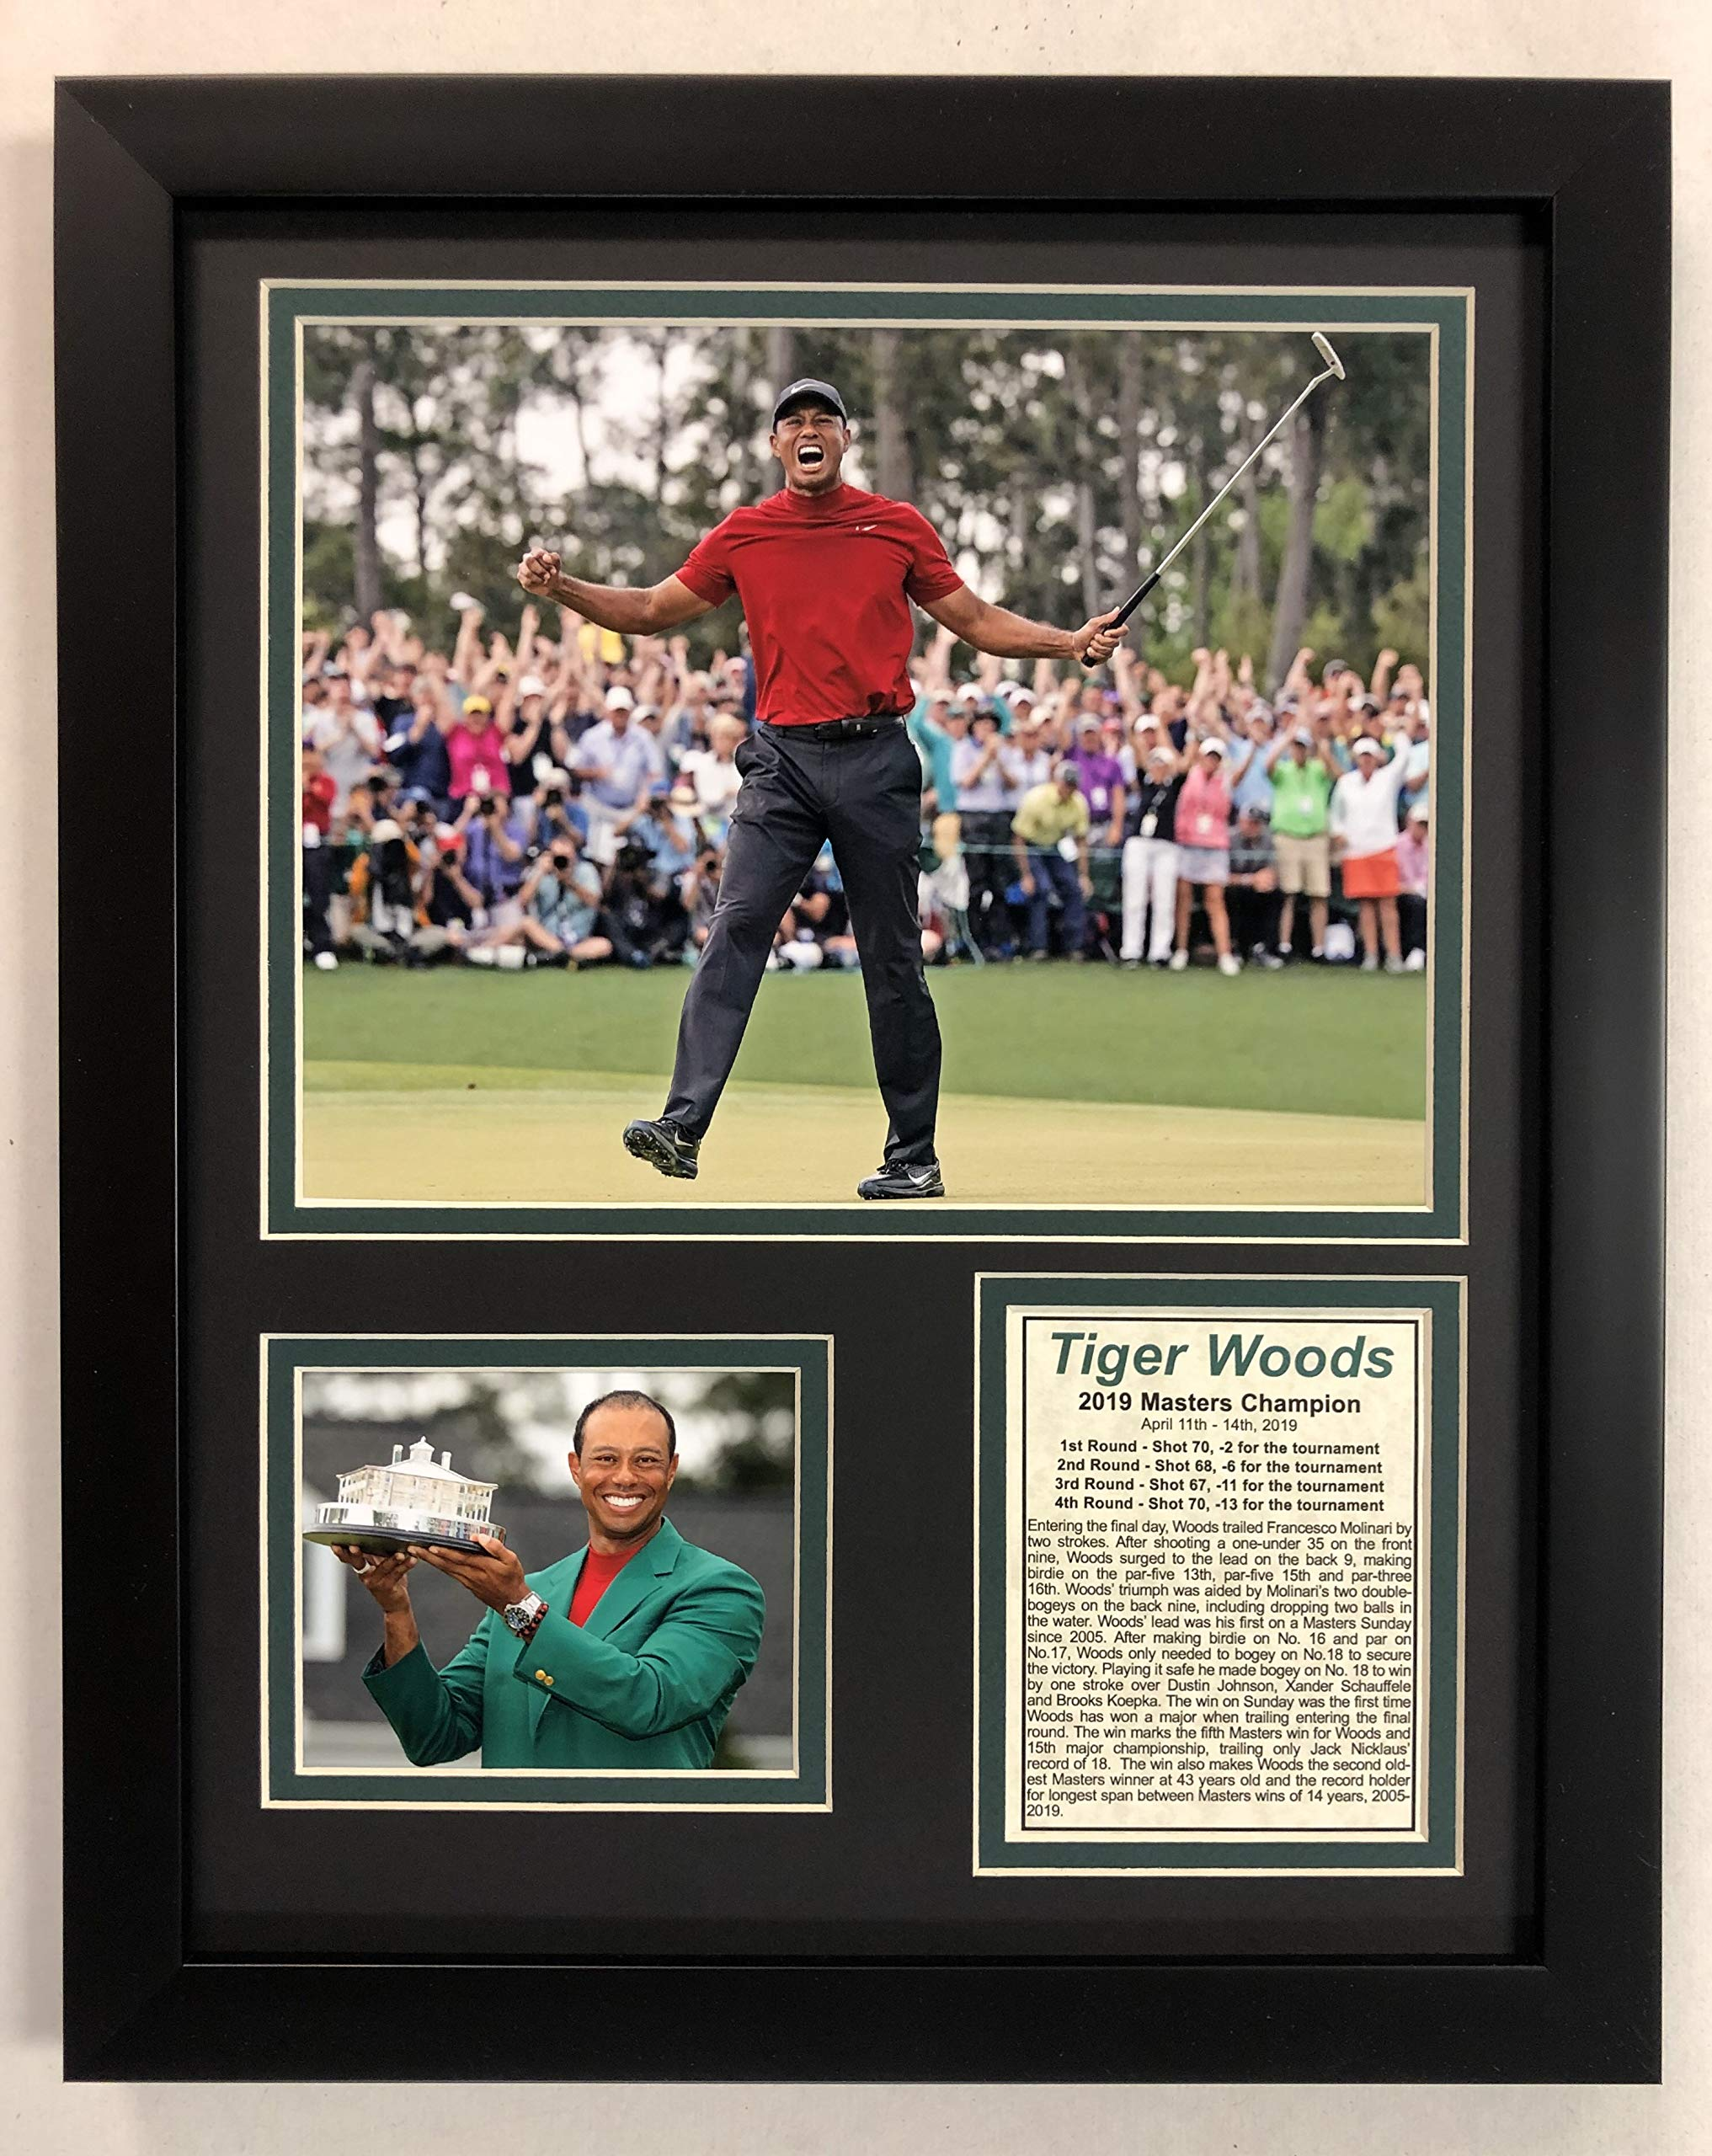 Legends Never Die Tiger Woods - 2019 Masters Champion Celebration - Framed 12''x15'' Double Matted Photos by Legends Never Die (Image #1)